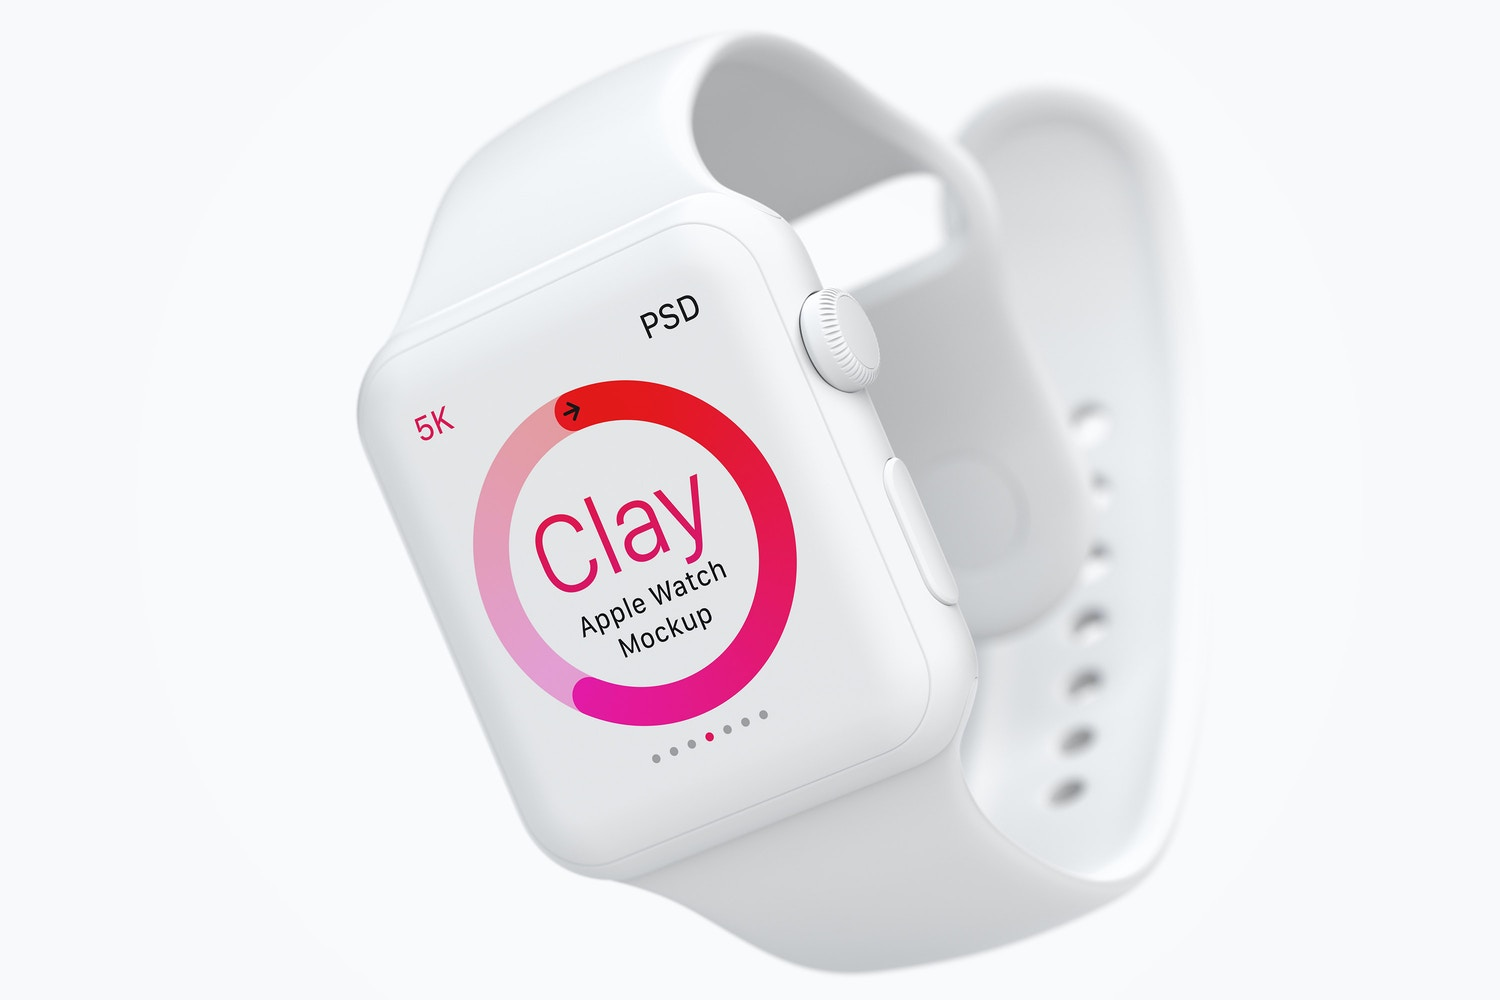 Clay Apple Watch Mockup 02 by Original Mockups on Original Mockups